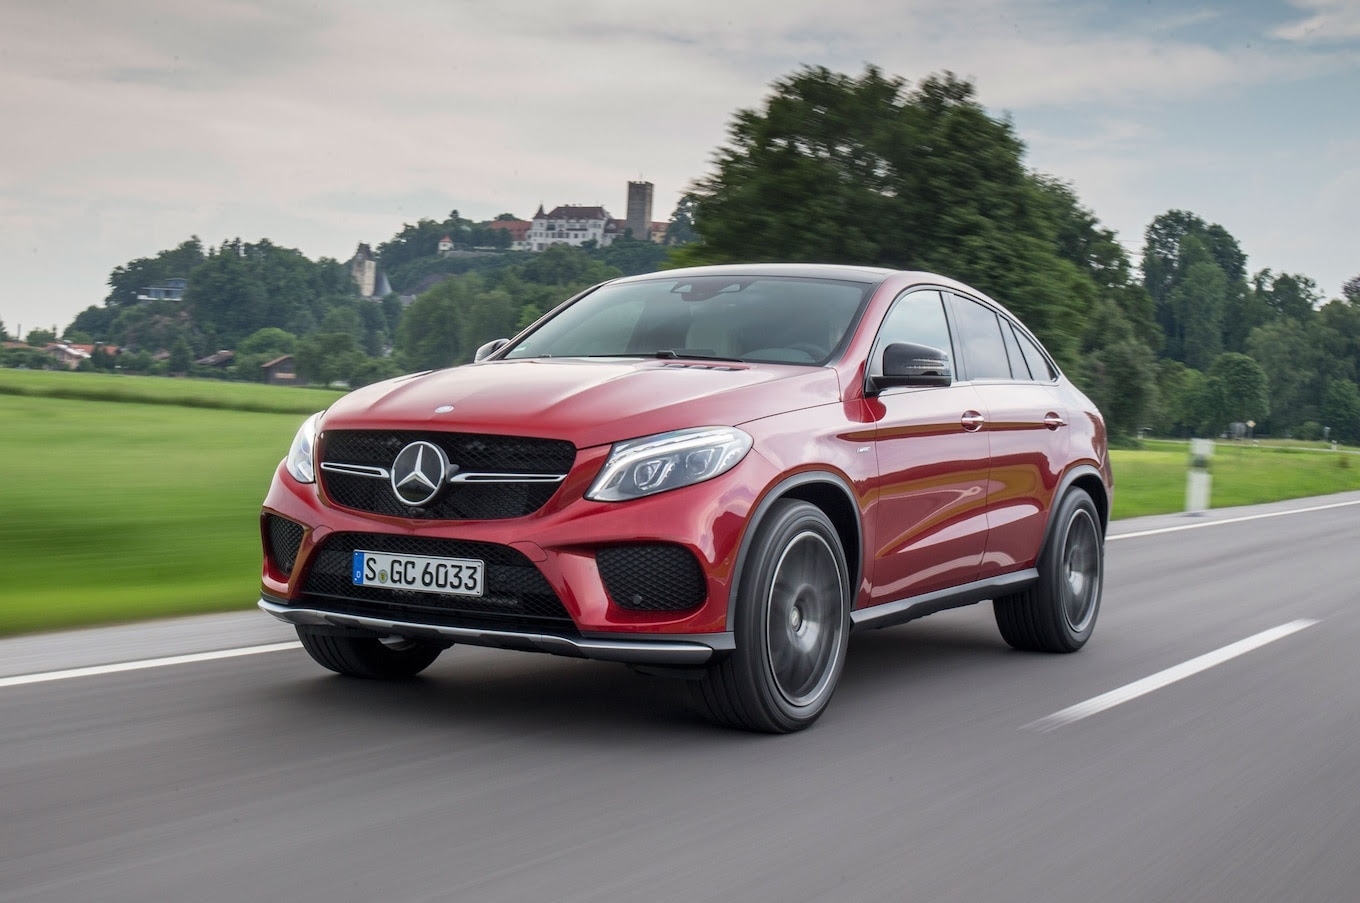 2016 Mercedes-Benz GLE Coupe First Drive Review - Motor Trend